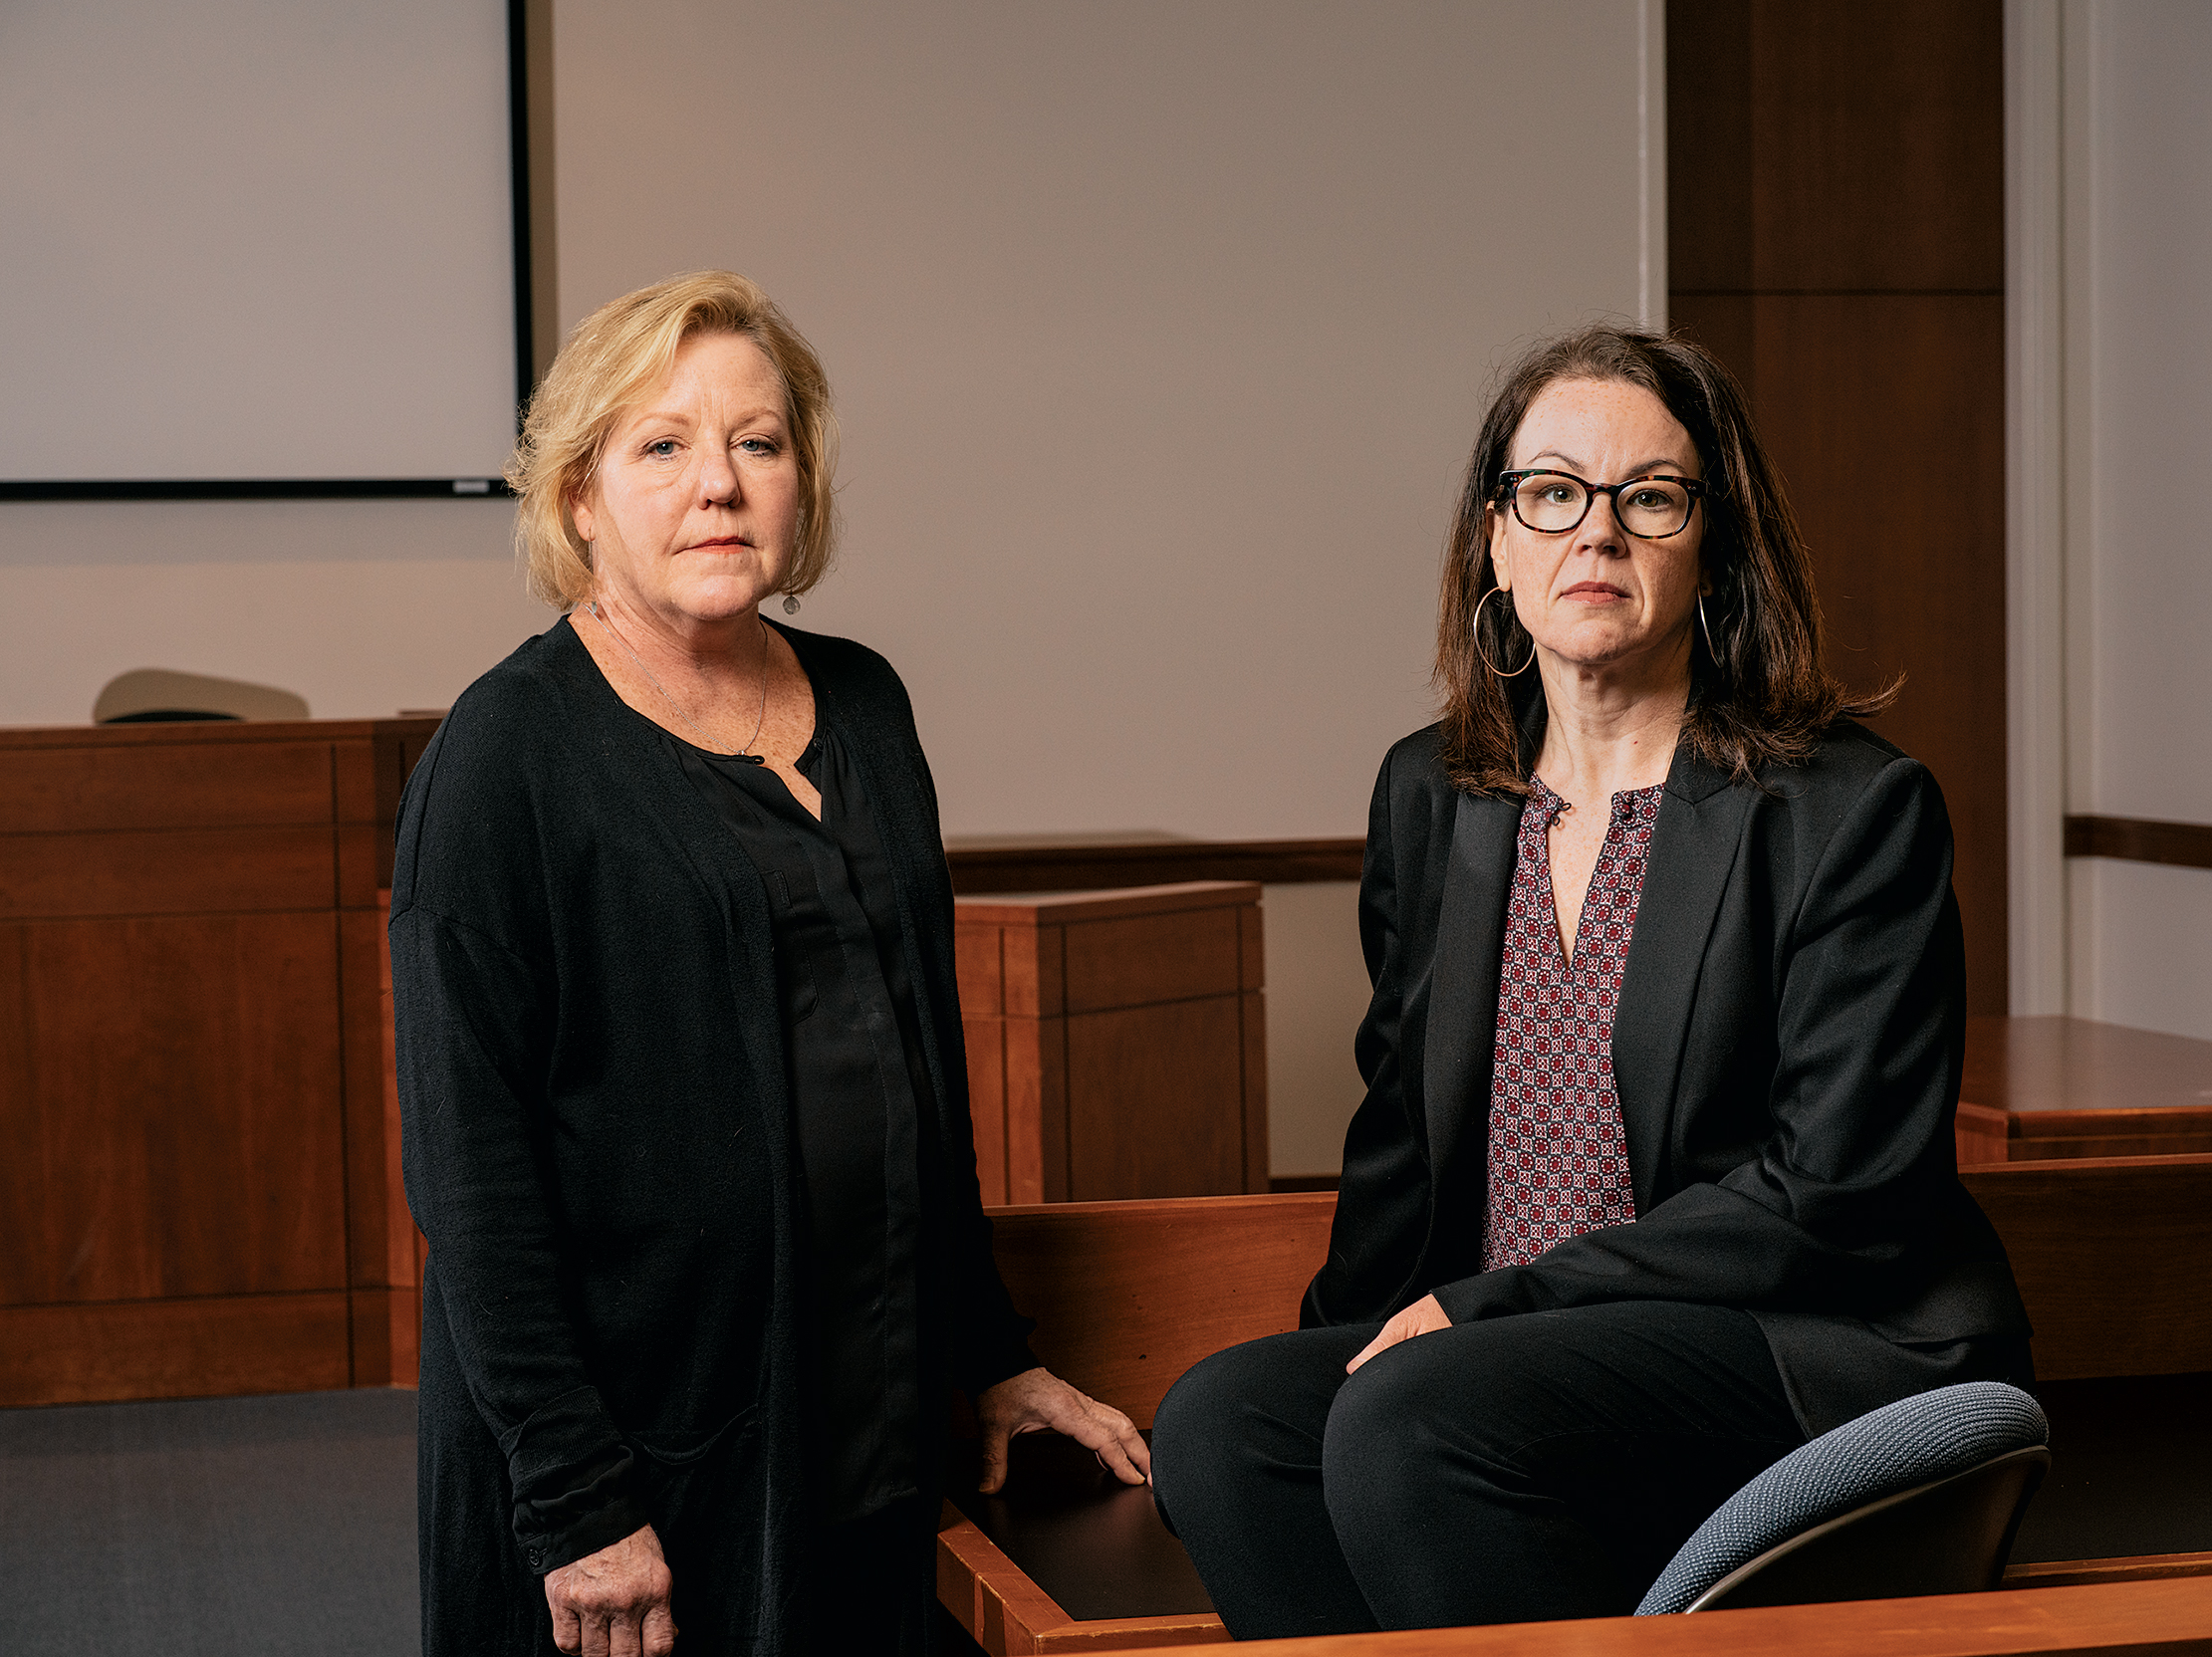 UVA lawyer Deirdre Enright (left) has picked apart the case with Jennifer Givens (right) and others at the Innocence Project for a decade.